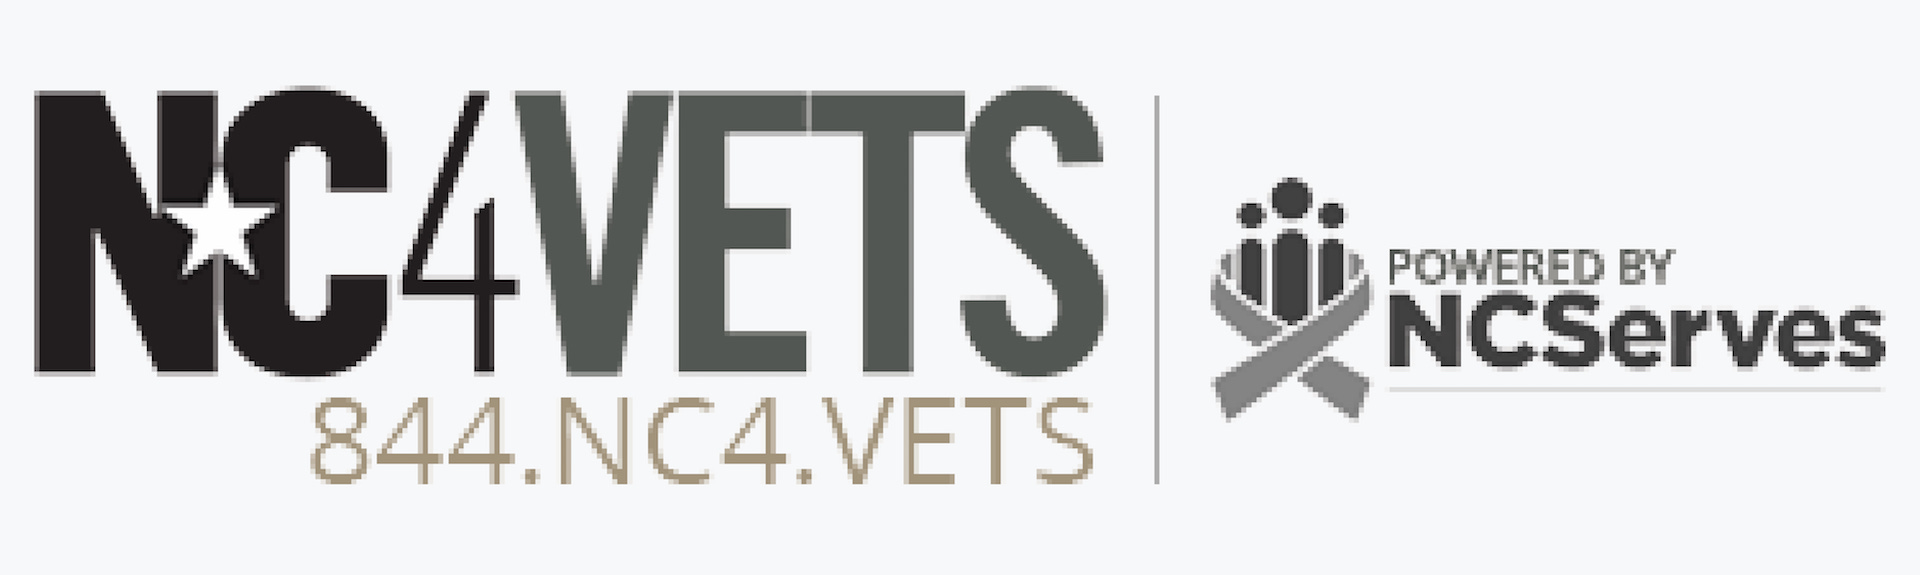 NC4Vets Logo - Click Here to Learn More